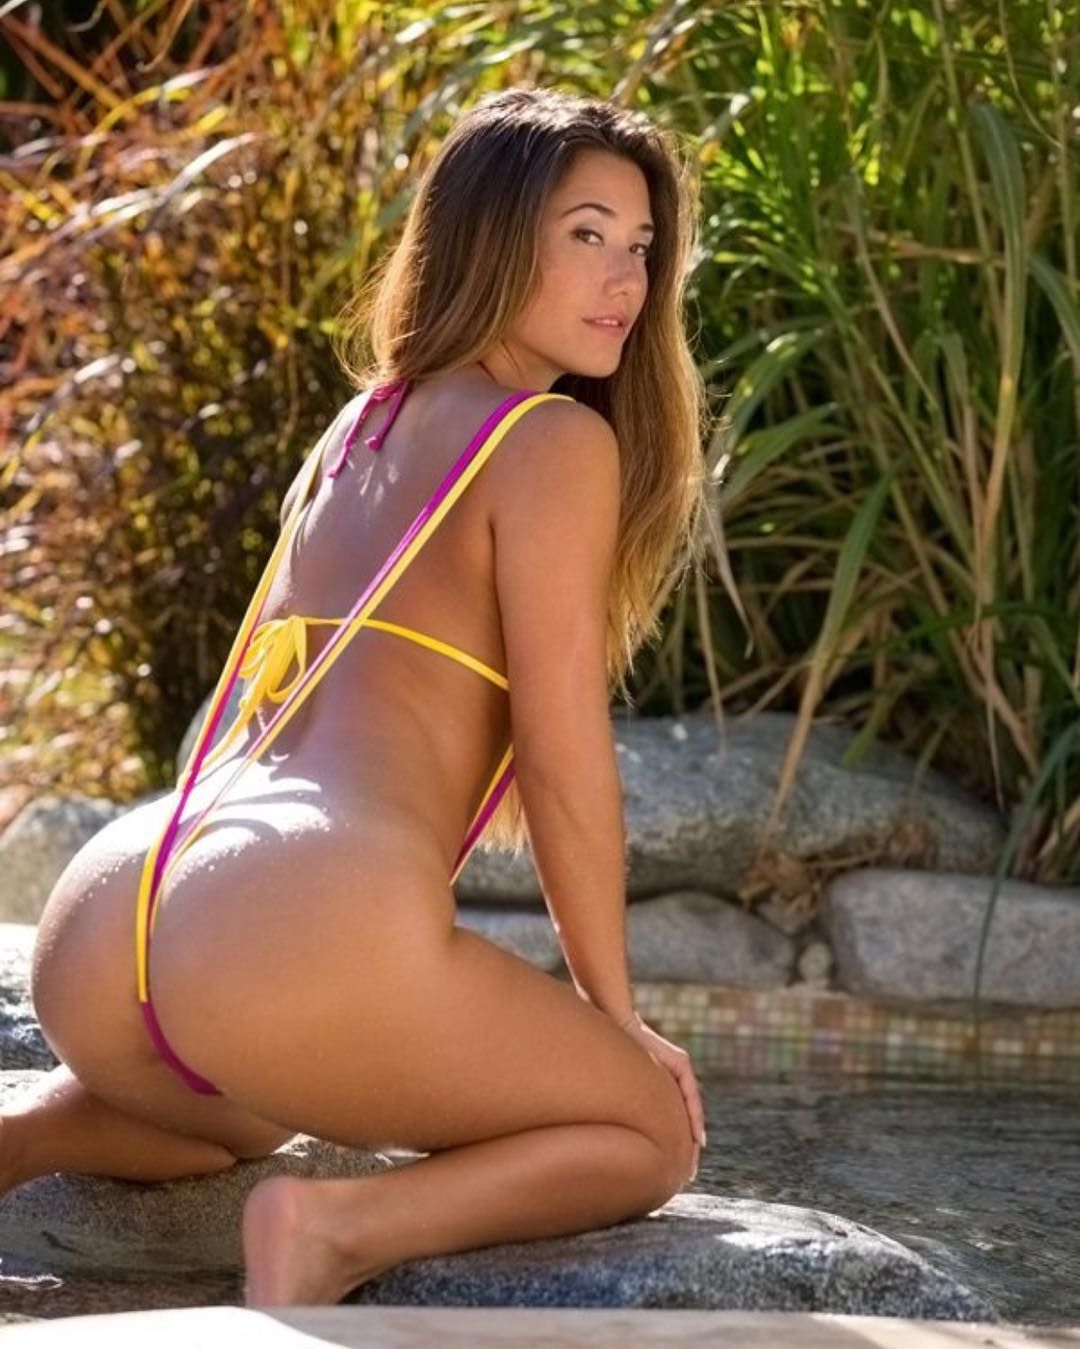 eva lovia (gorgeous model, on instagram: @lovialongtime) nude (in